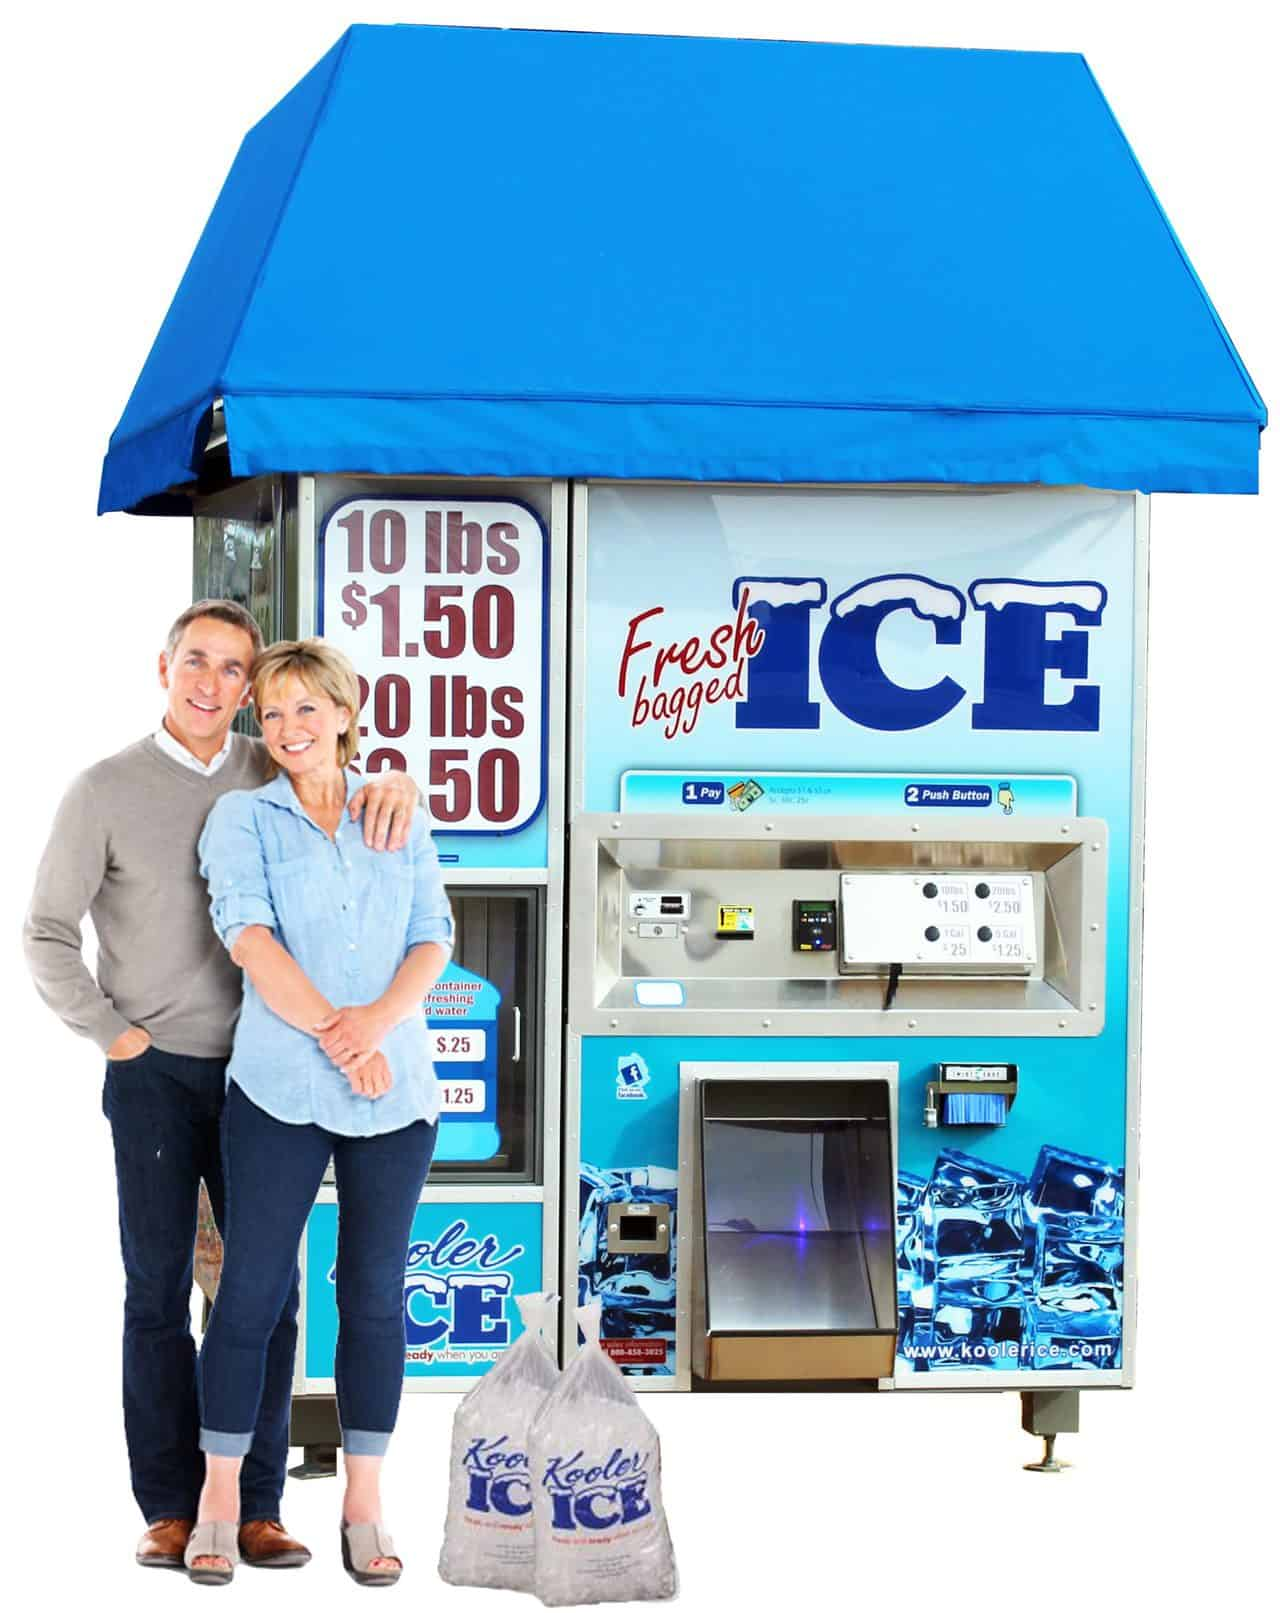 IM1500 Ice Vending Machine